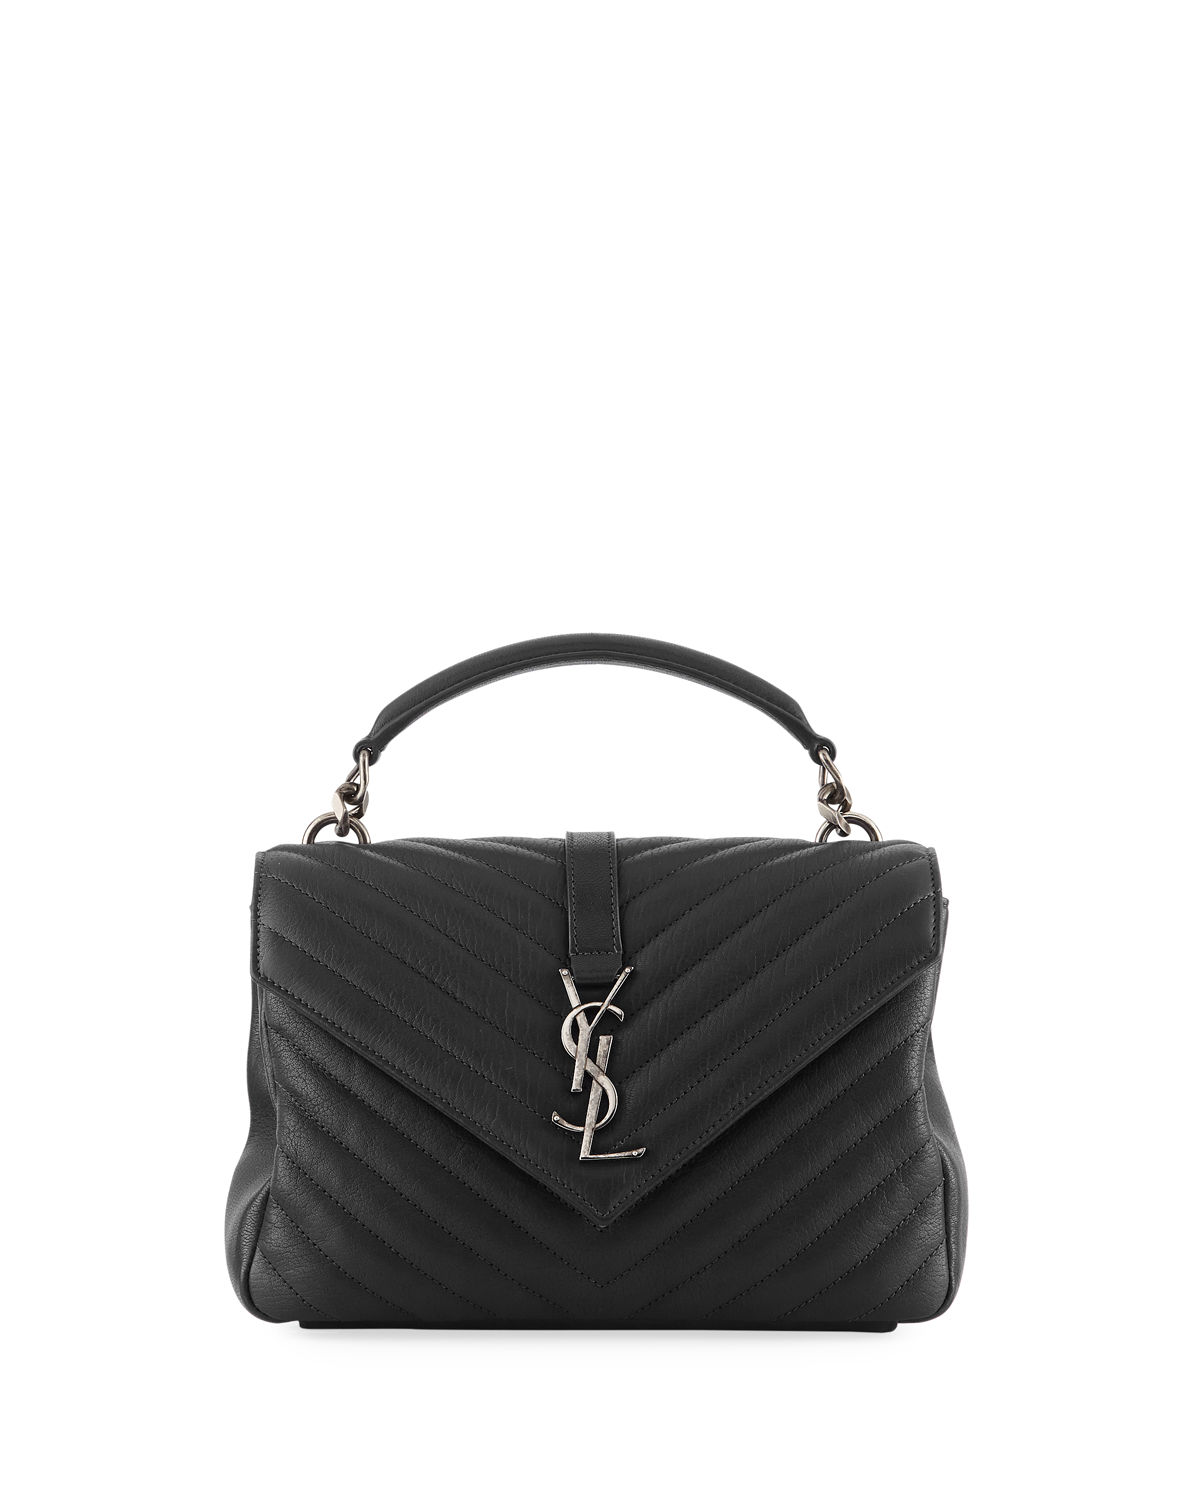 8630112169d9b Saint LaurentCollege Medium Monogram YSL V-Flap Crossbody Bag - Silver  Hardware